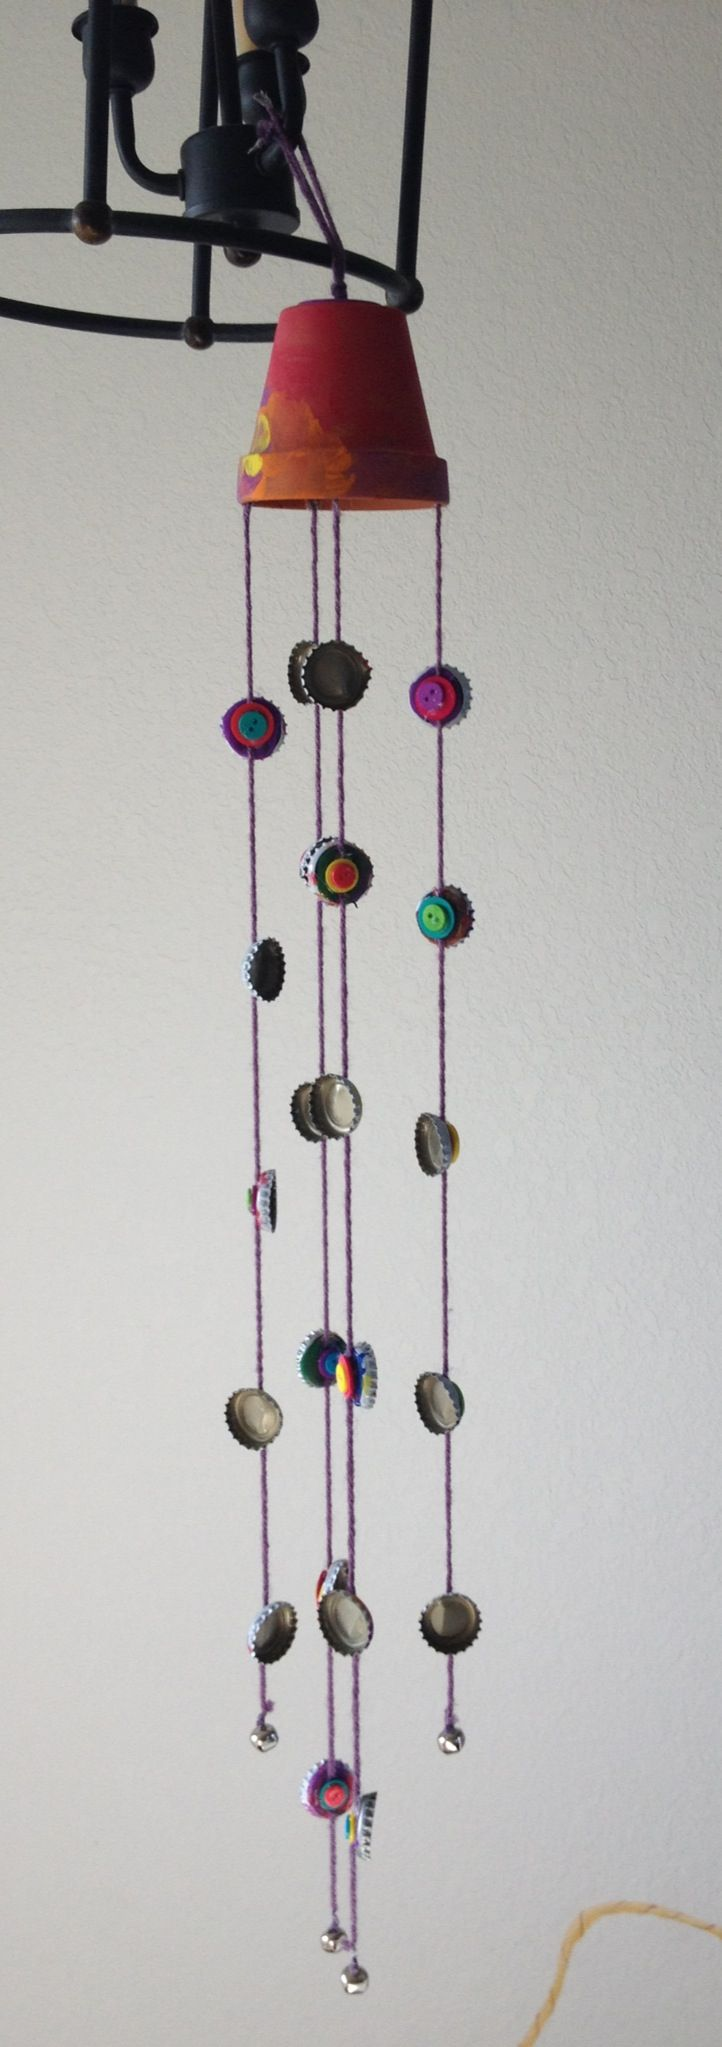 Diy Wind Chimes Best 25 Homemade Wind Chimes Ideas On Pinterest Wind Chimes